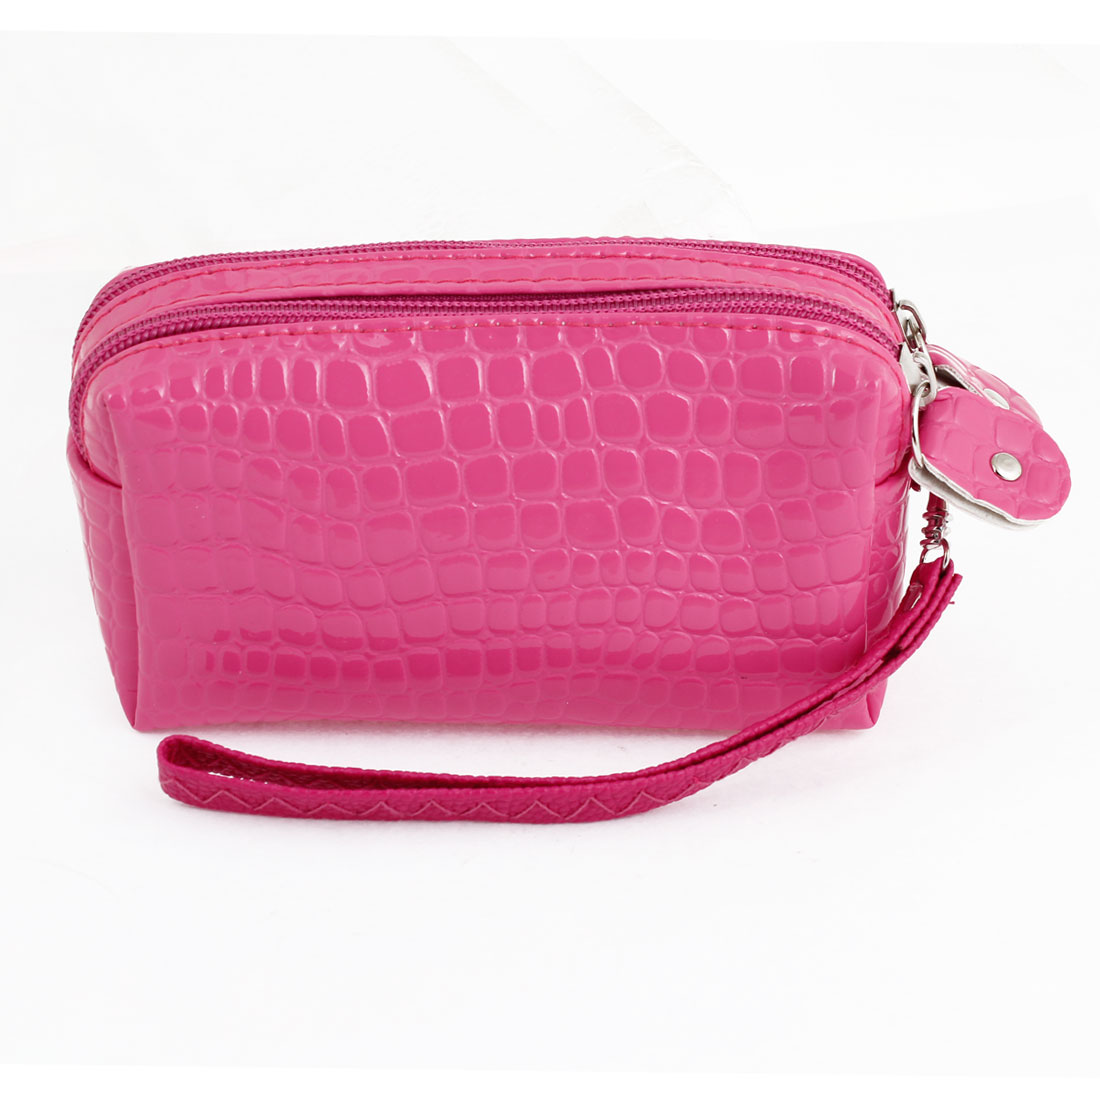 Ladies Faux Leather Alligator Pattern 3 Compartments Purse Fuchsia